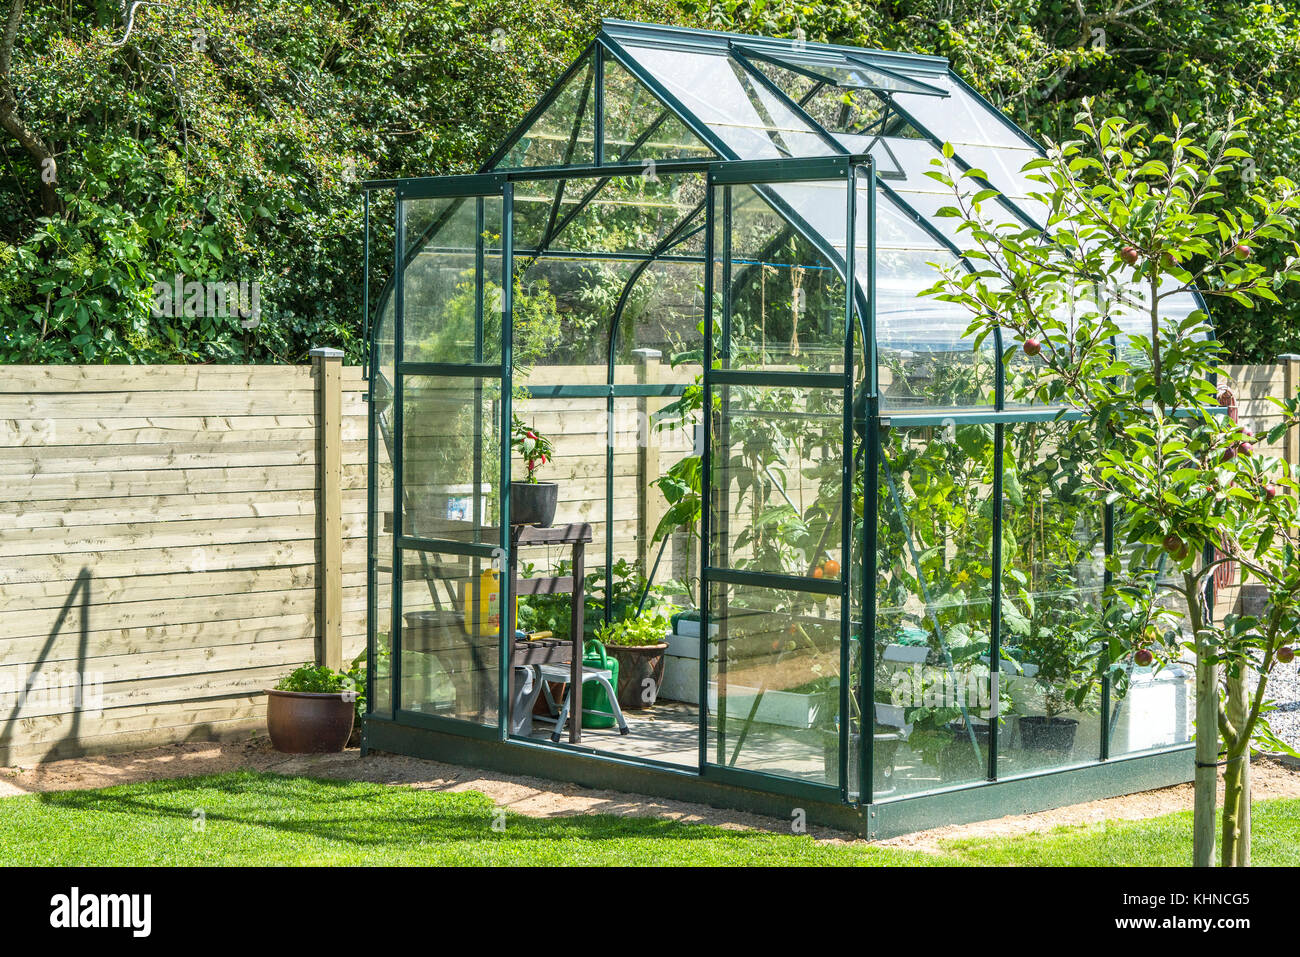 Greenhouse in a garden near a wooden fence in the summer with an apple tree - Stock Image